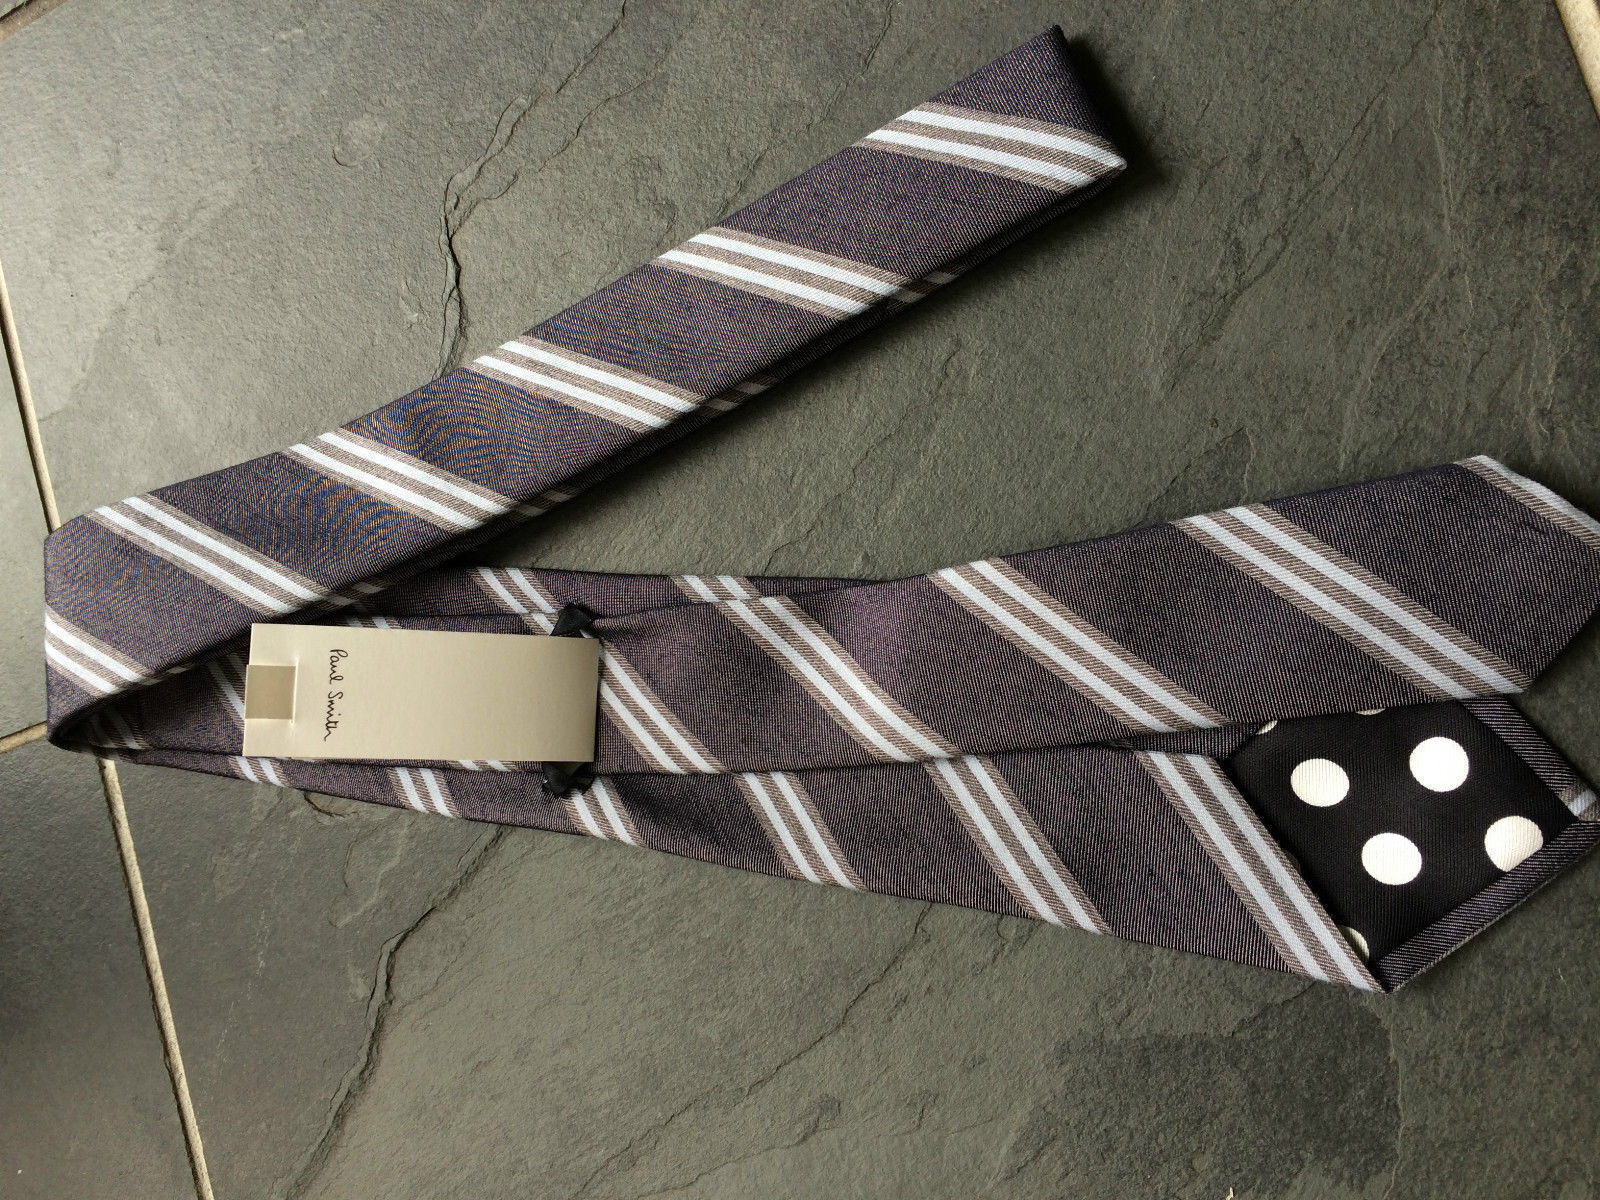 PAUL SMITH 57% 57% 57% Silk   43% Blau  Cotton Stripe TIE   - 9cm Blade | Sehr gute Qualität